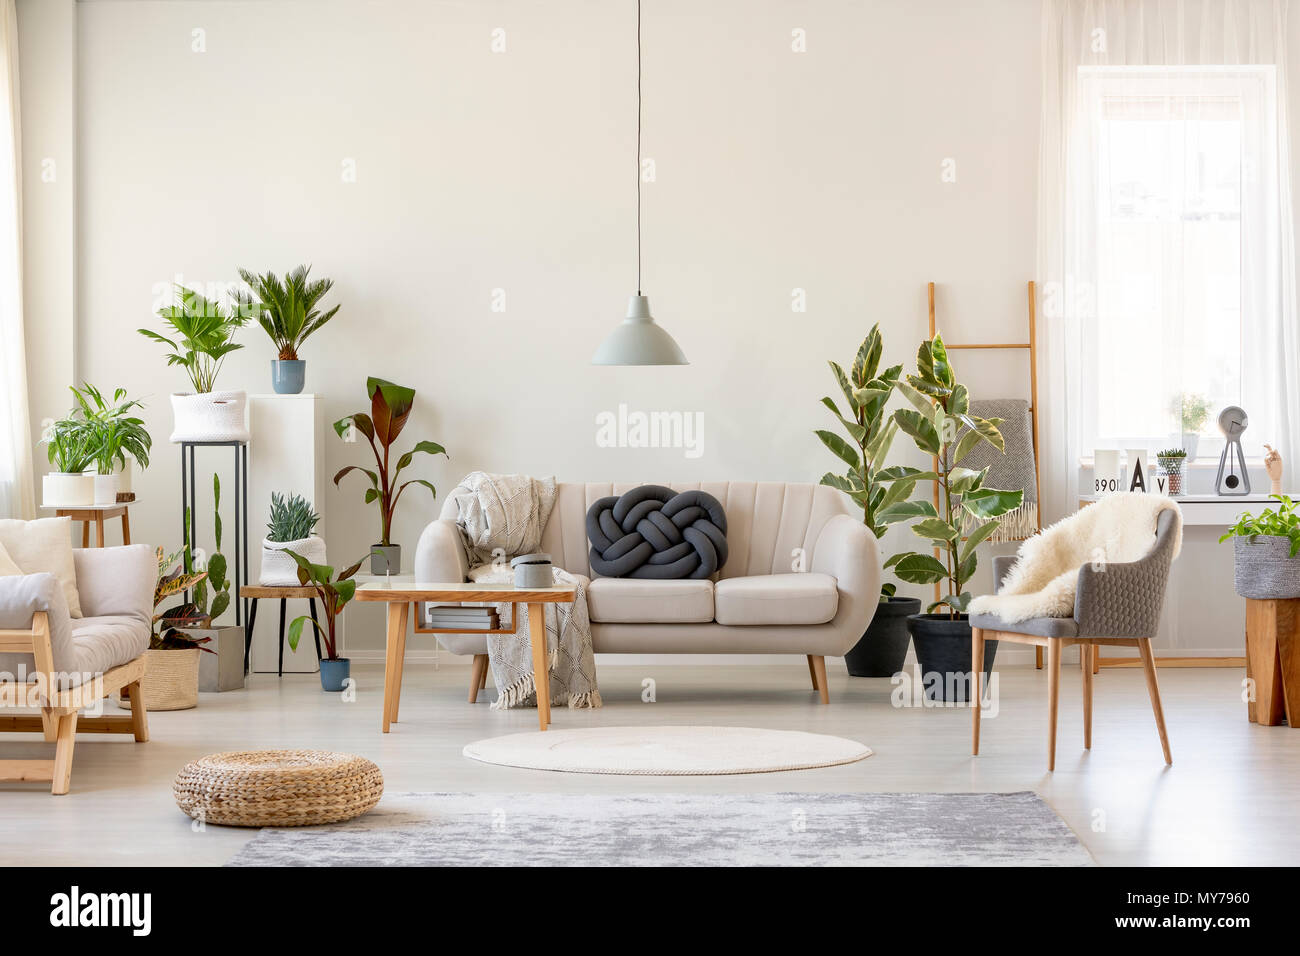 Real photo of a botanic living room interior full of plants with a grey couch standing behind a wooden table and under a lamp, with two chairs on the  Stock Photo